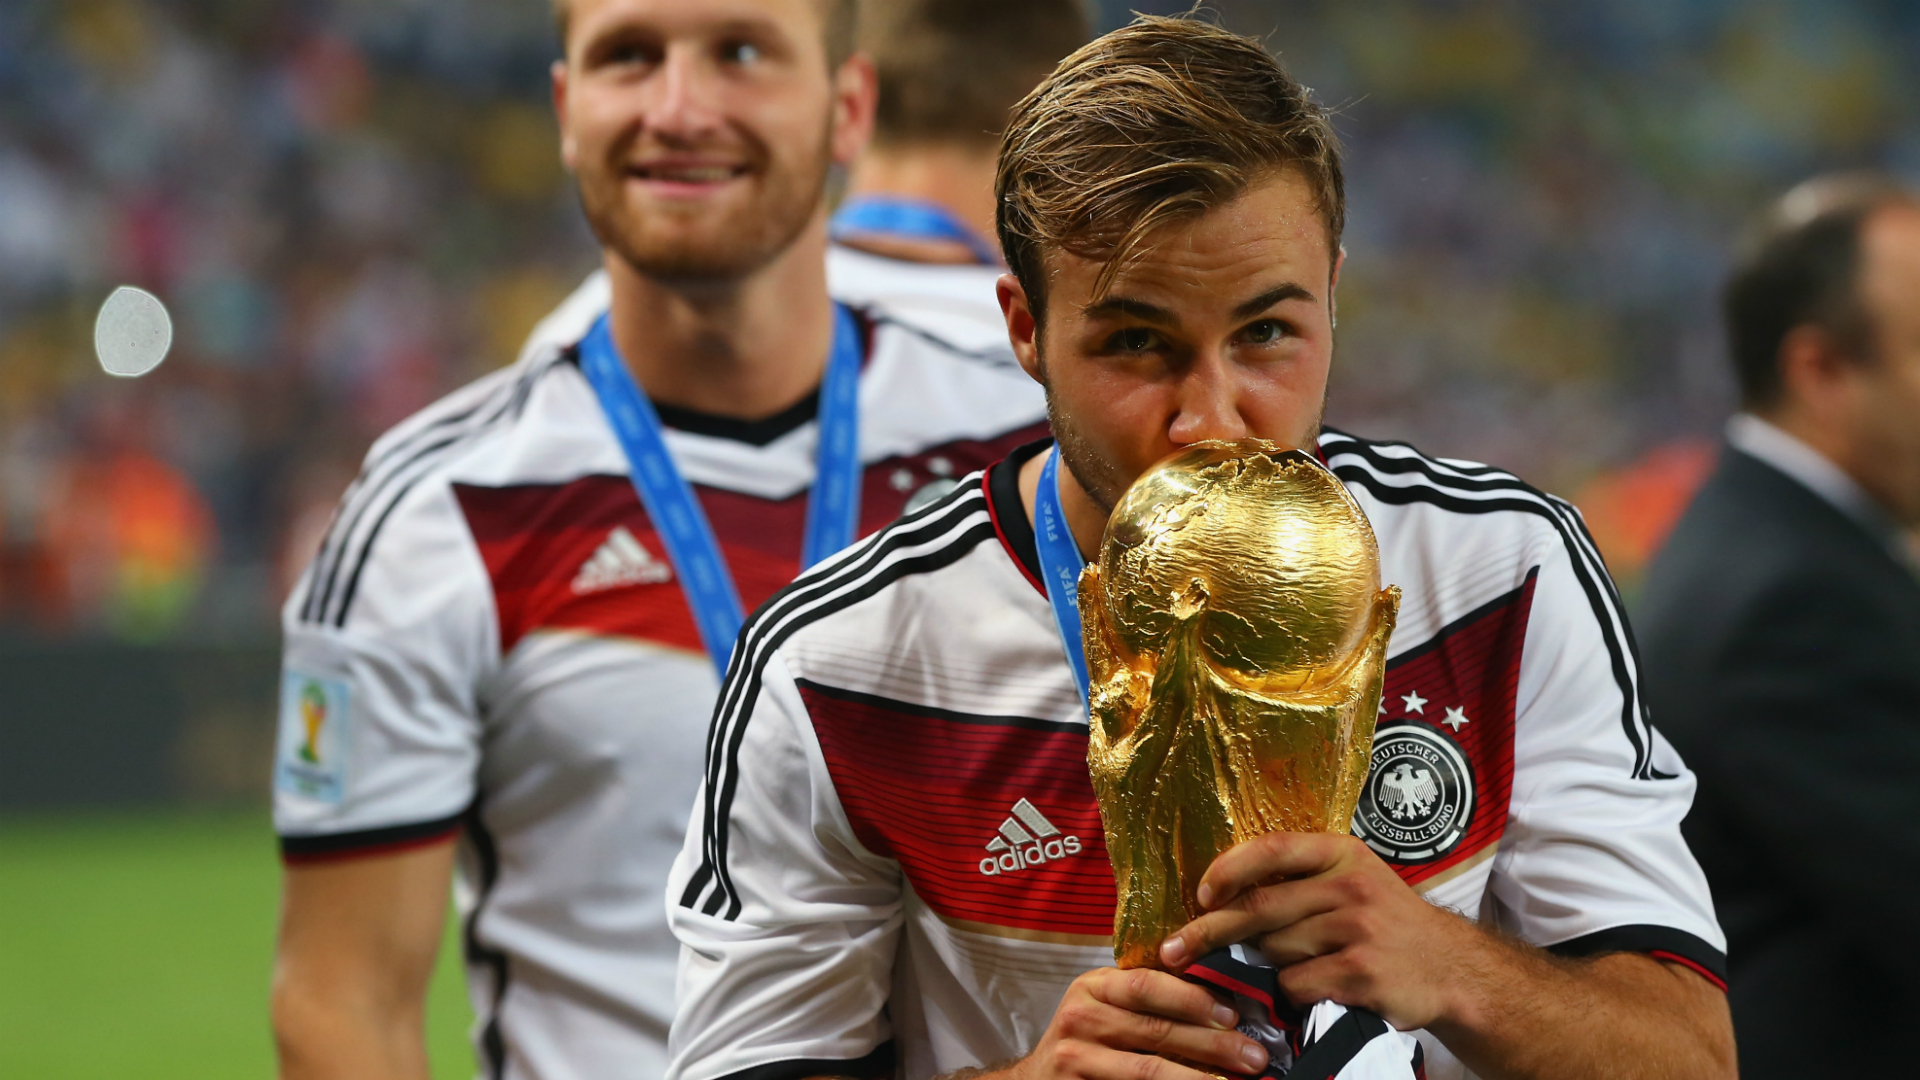 World Cup hero to washed out Mario Gotze s career at risk of